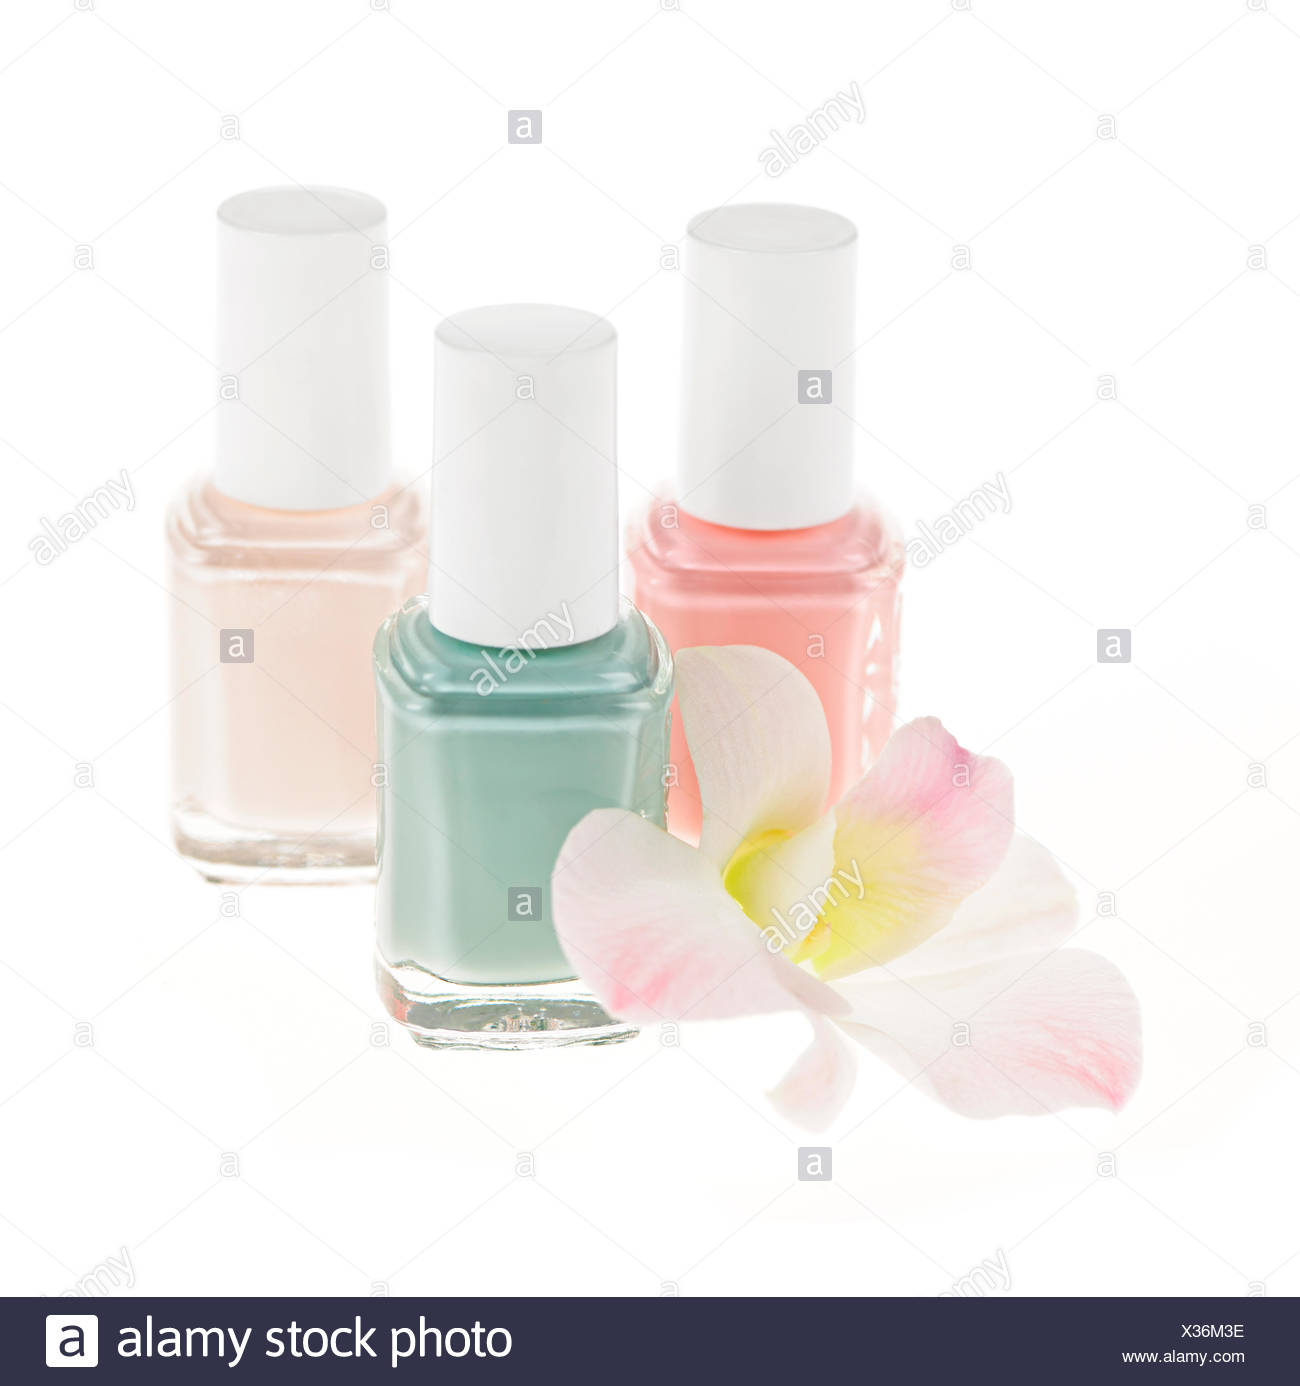 Three nail polish bottles with orchid flower on white background three nail polish bottles with orchid flower on white background izmirmasajfo